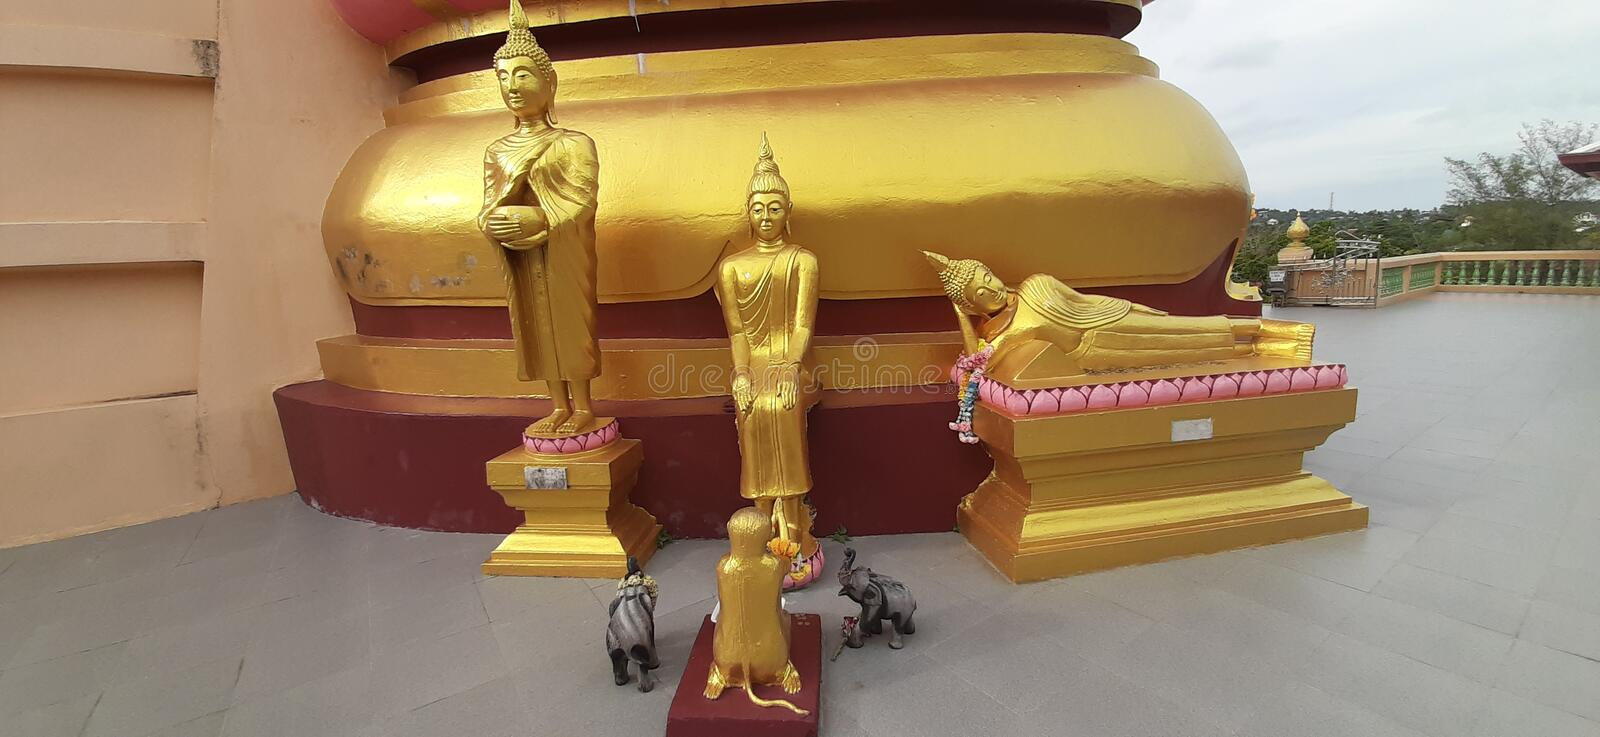 Buddha god gold almighty rich royalty free stock photography